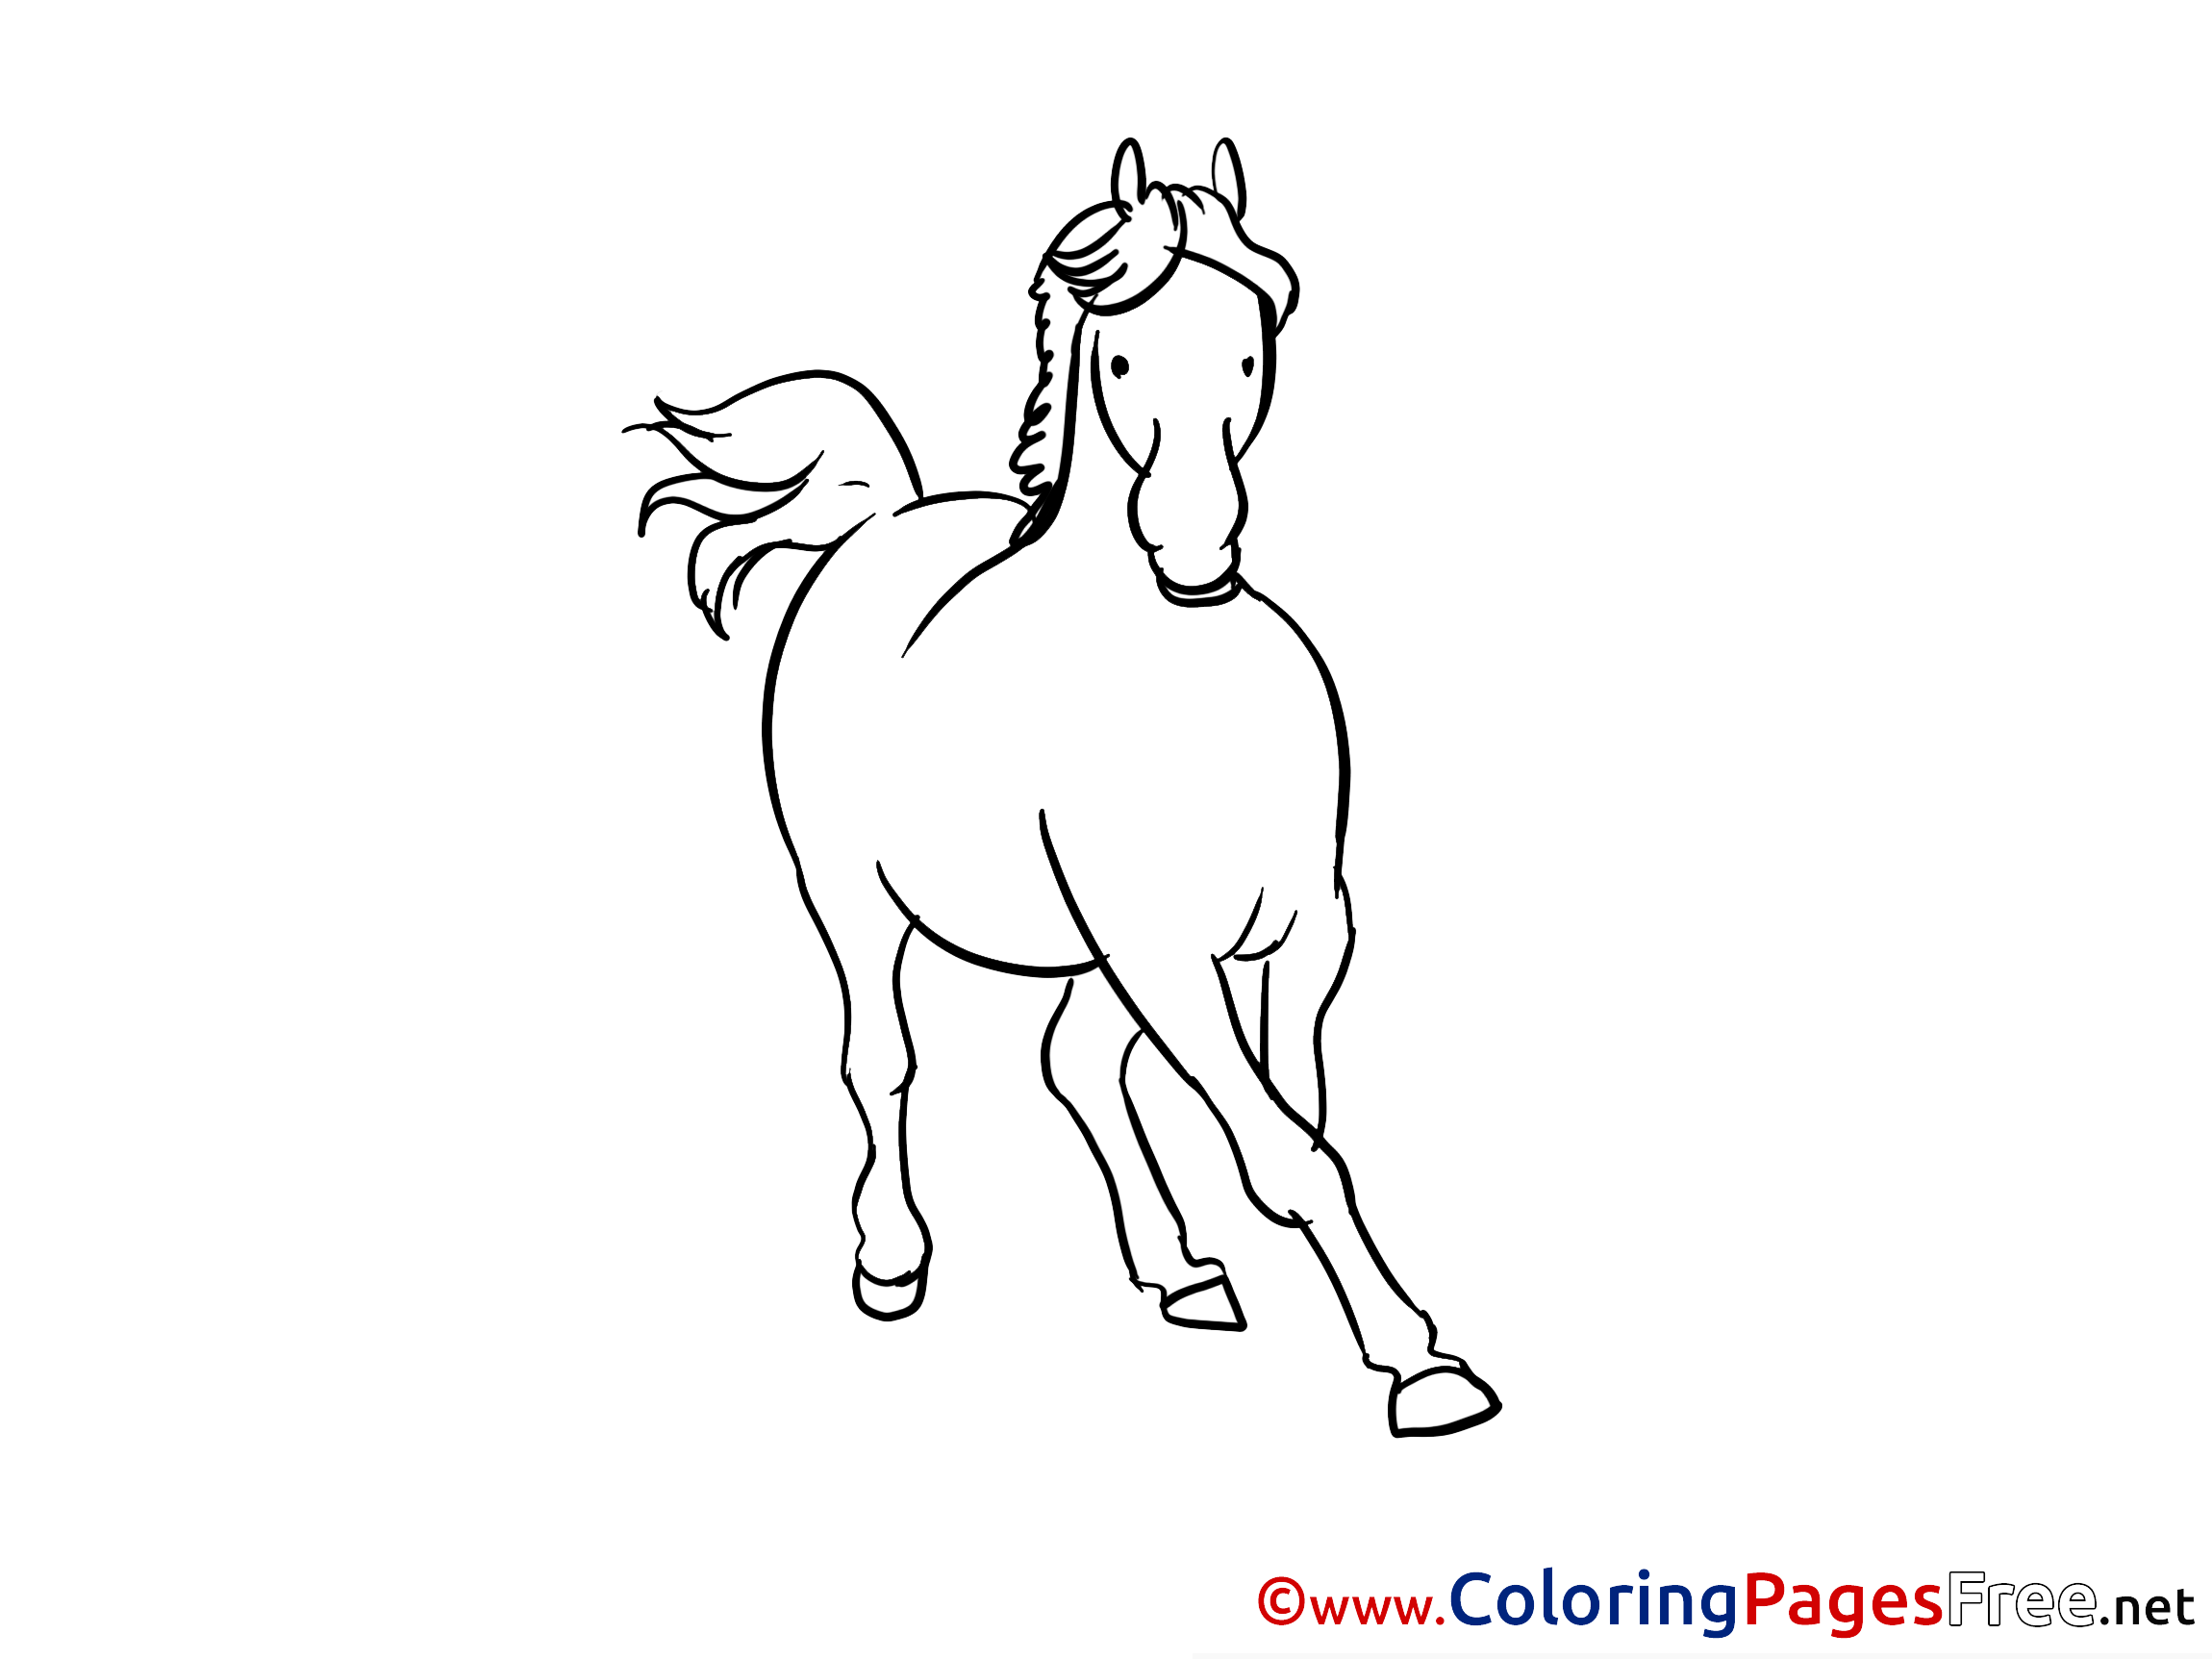 Gallop Horse Coloring Sheets download free